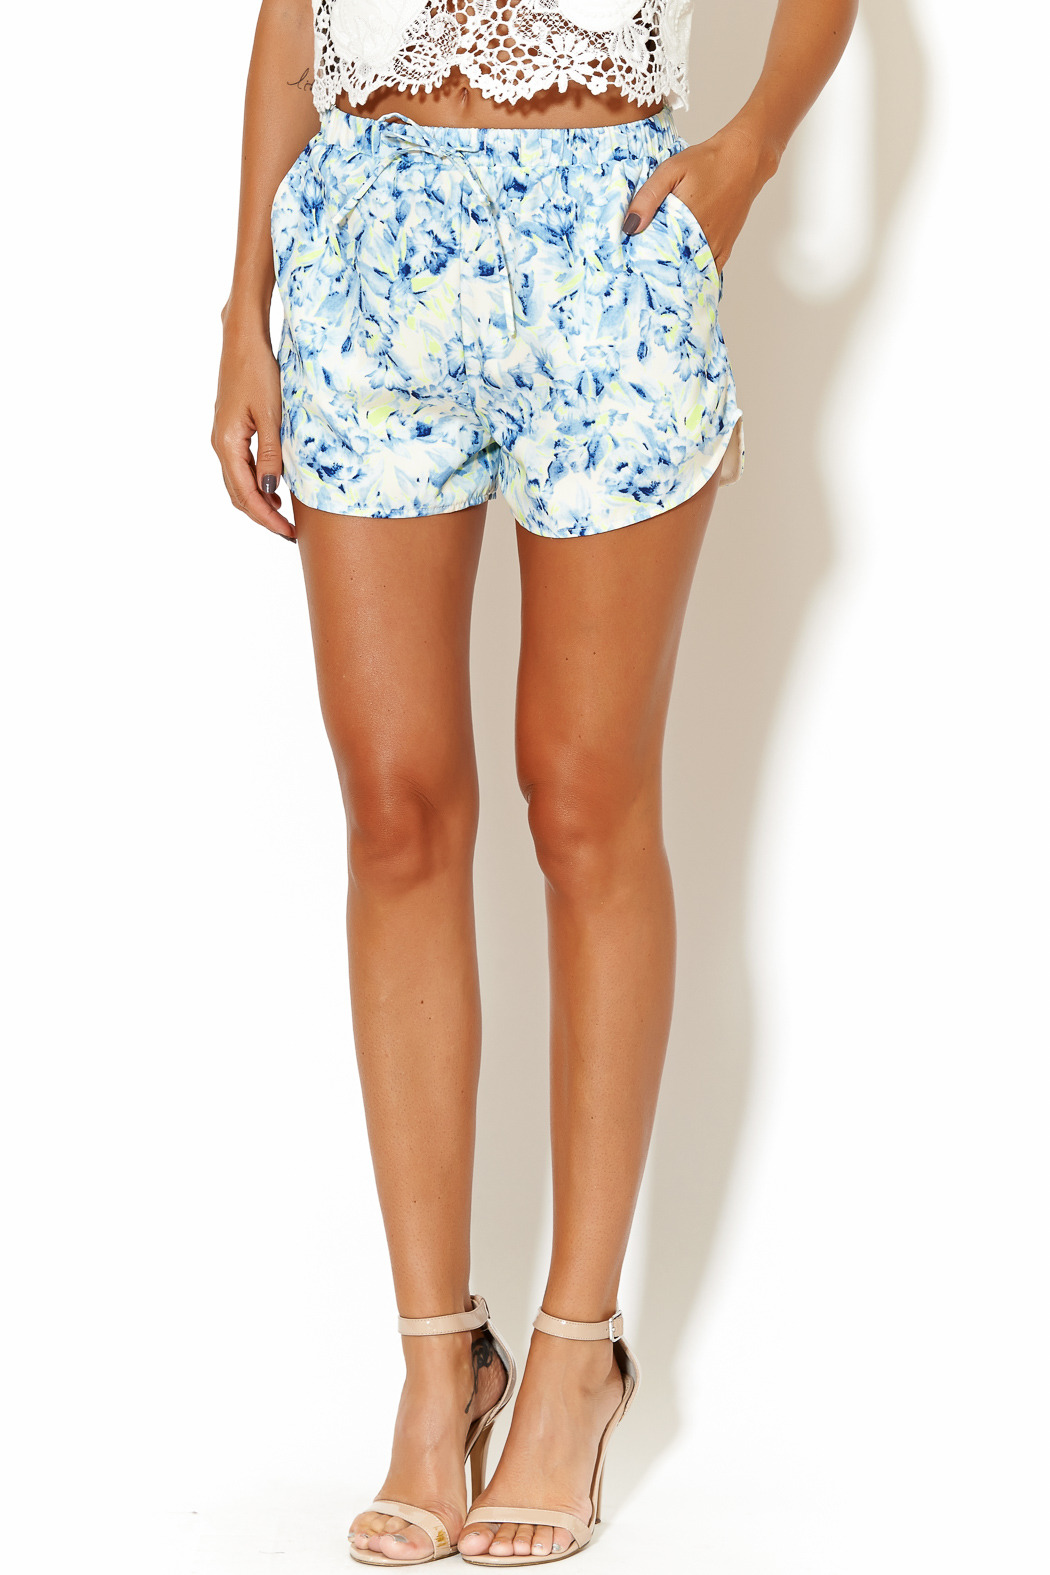 Lovers + Friends Adore Shorts - Main Image